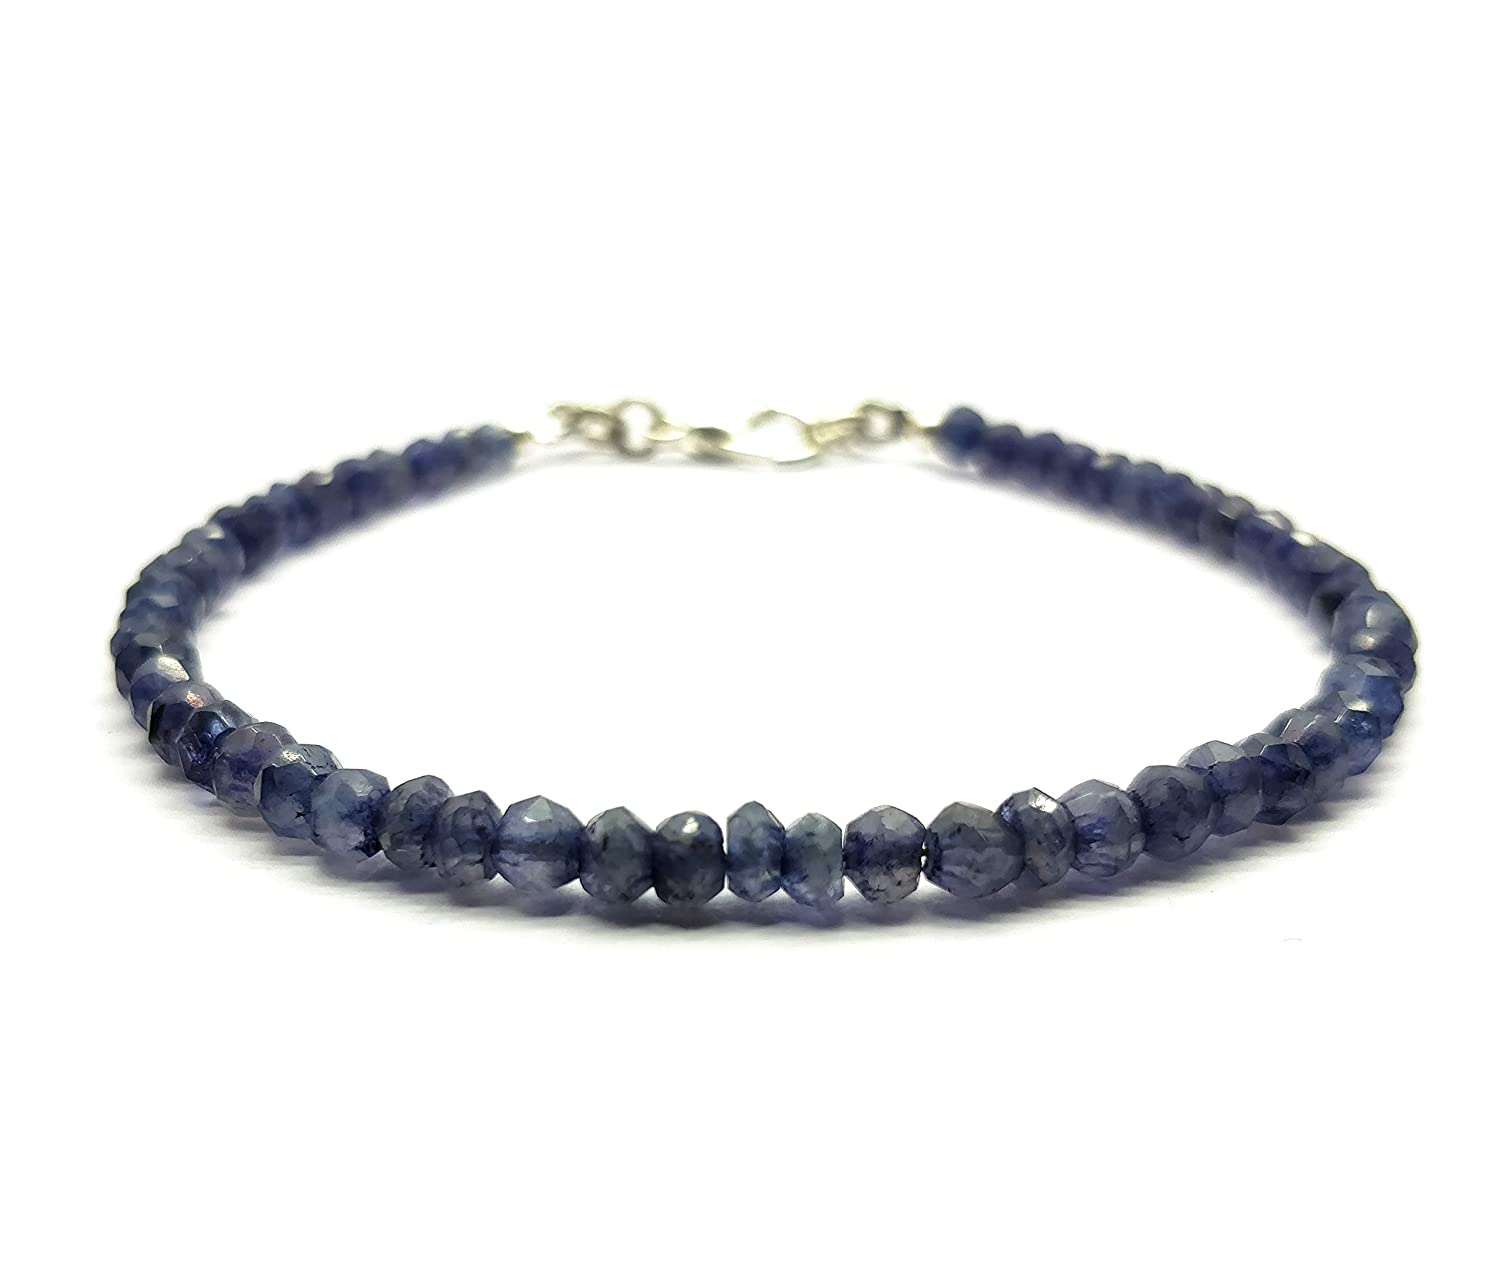 LOVEKUSH Beautiful AAA++ Iolite Bracelet 3.5 mm Rondelle & Faceted, 7 Inch Long. Healing Gemstone, Unique-Gift-for-Wife, Holidays, Energy, Chakra BR19 LOVEKUSH IMPEX